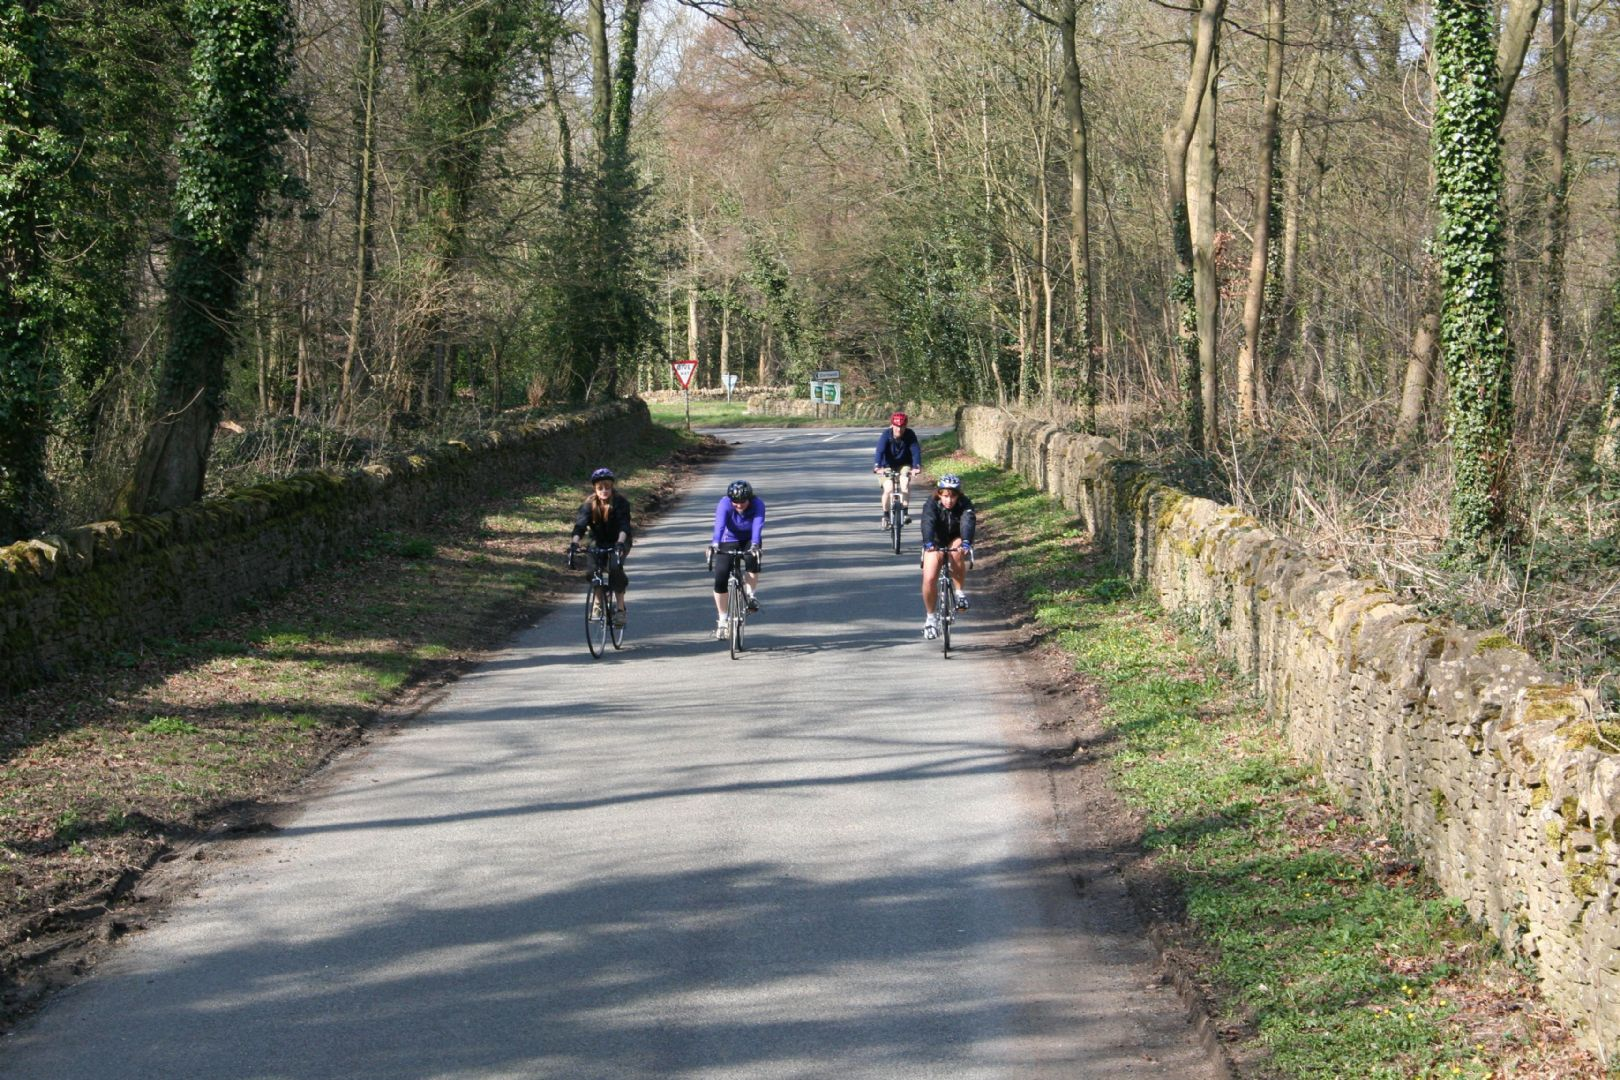 Chilterns Road Cycling Weekend 14.JPG - UK - Chilterns - Guided Road Cycling Weekend - Road Cycling